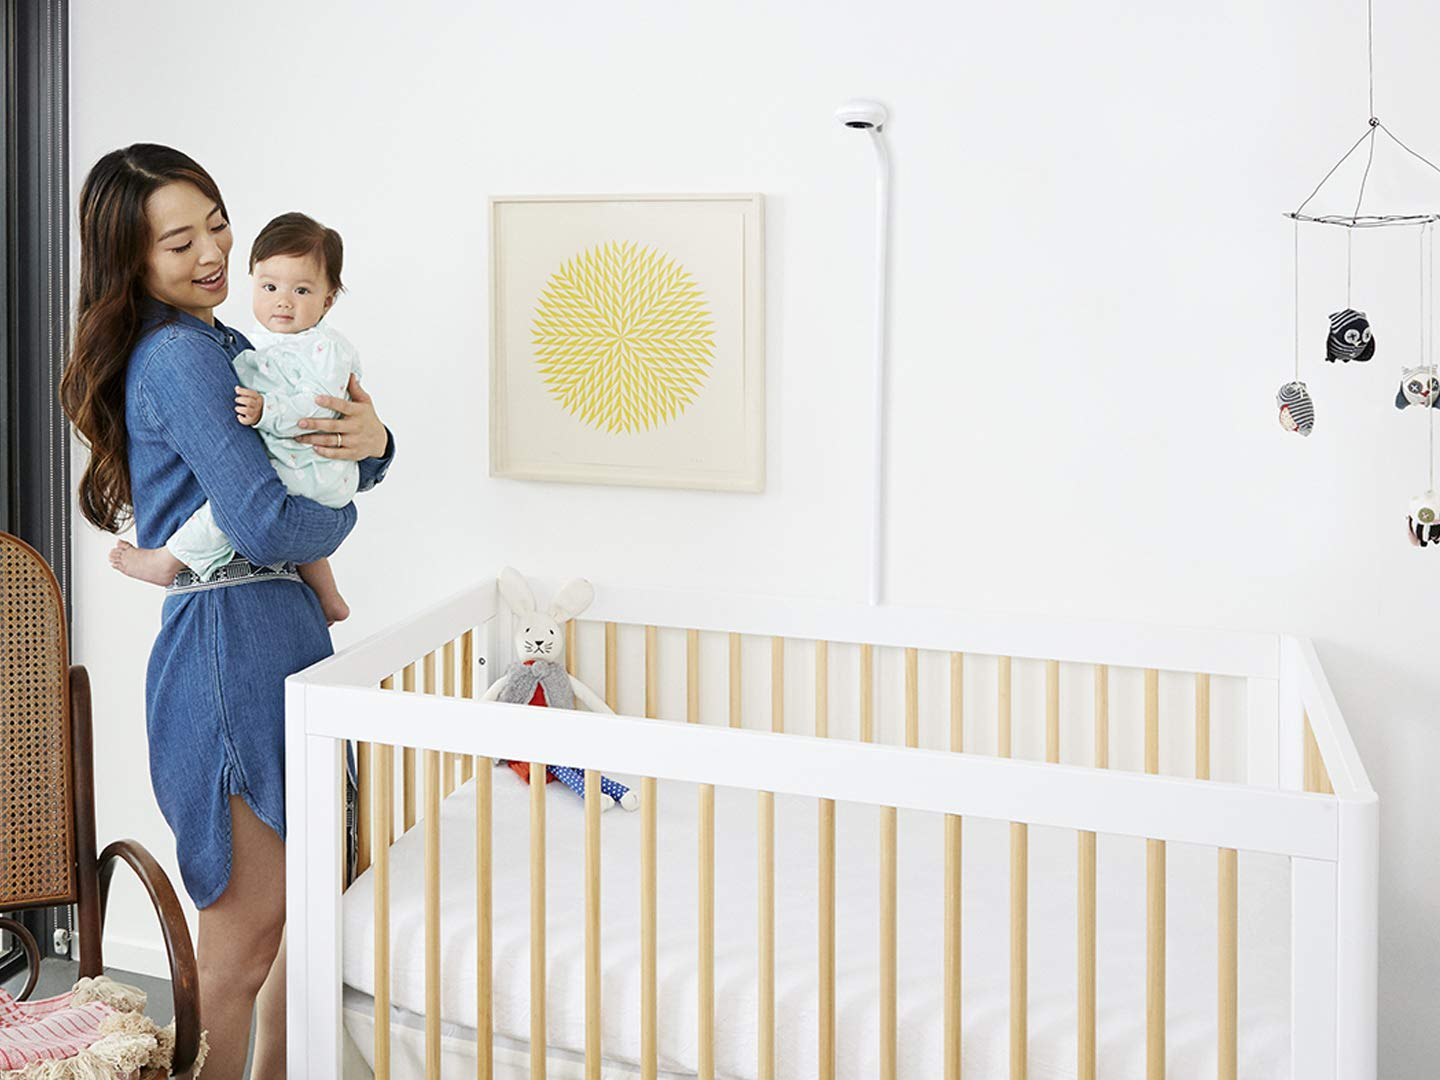 Night Vision Nanit Smart Baby Monitor and Wall Support Sleep Tracking Temperature /& Humidity Sensors and Nightlight Camera with HD Video /& Audio